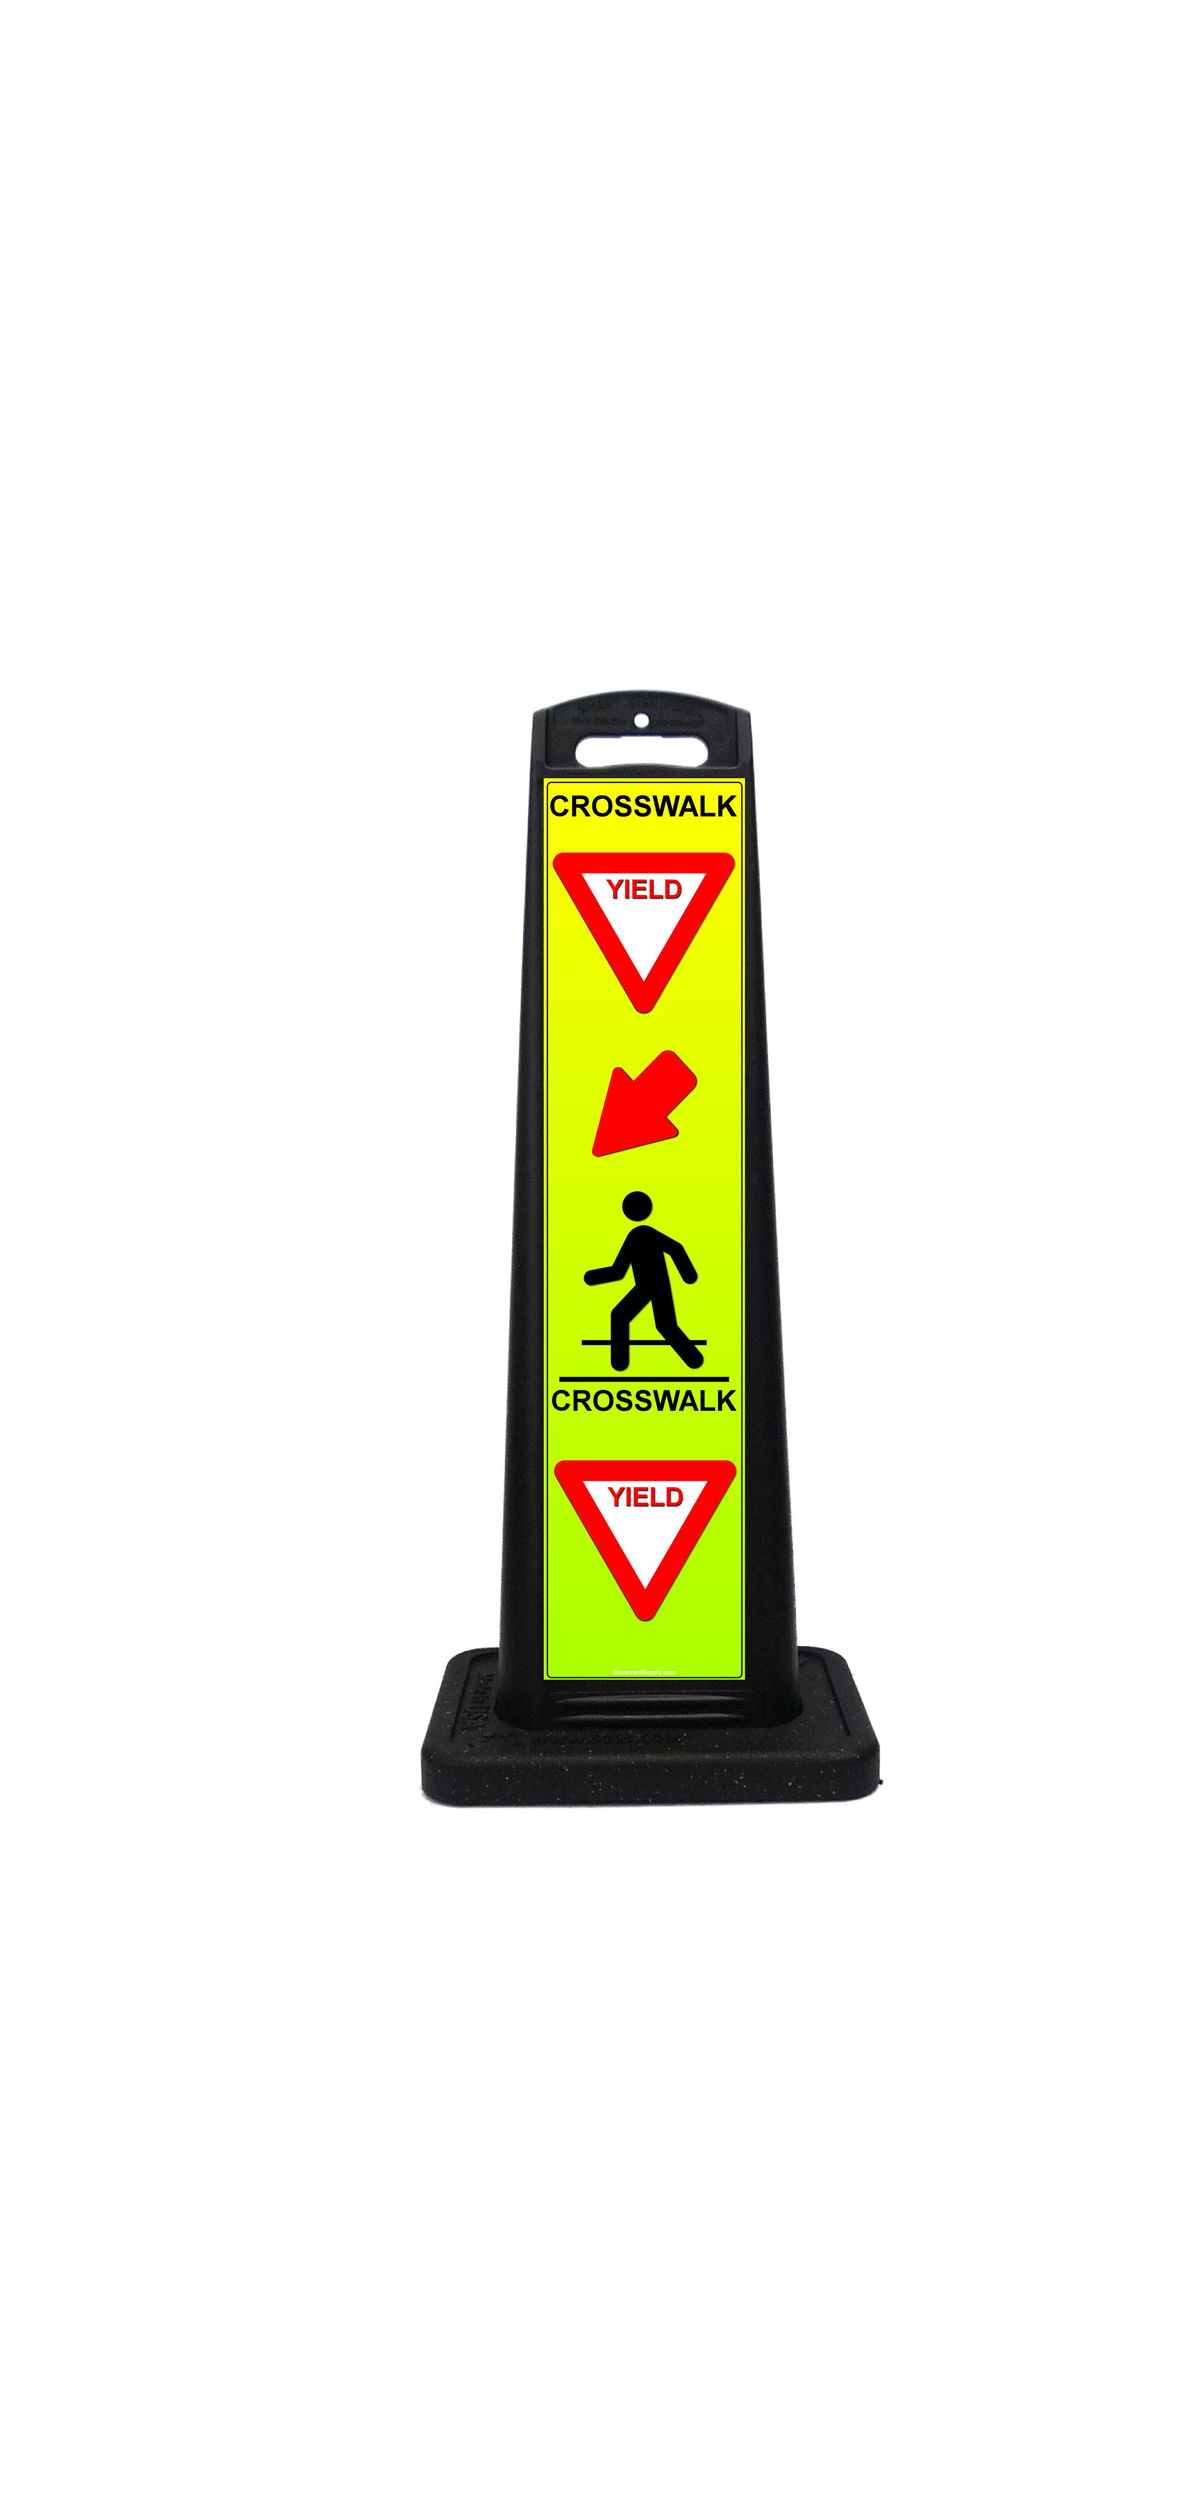 yield-for-crosswalk-sign-L.png